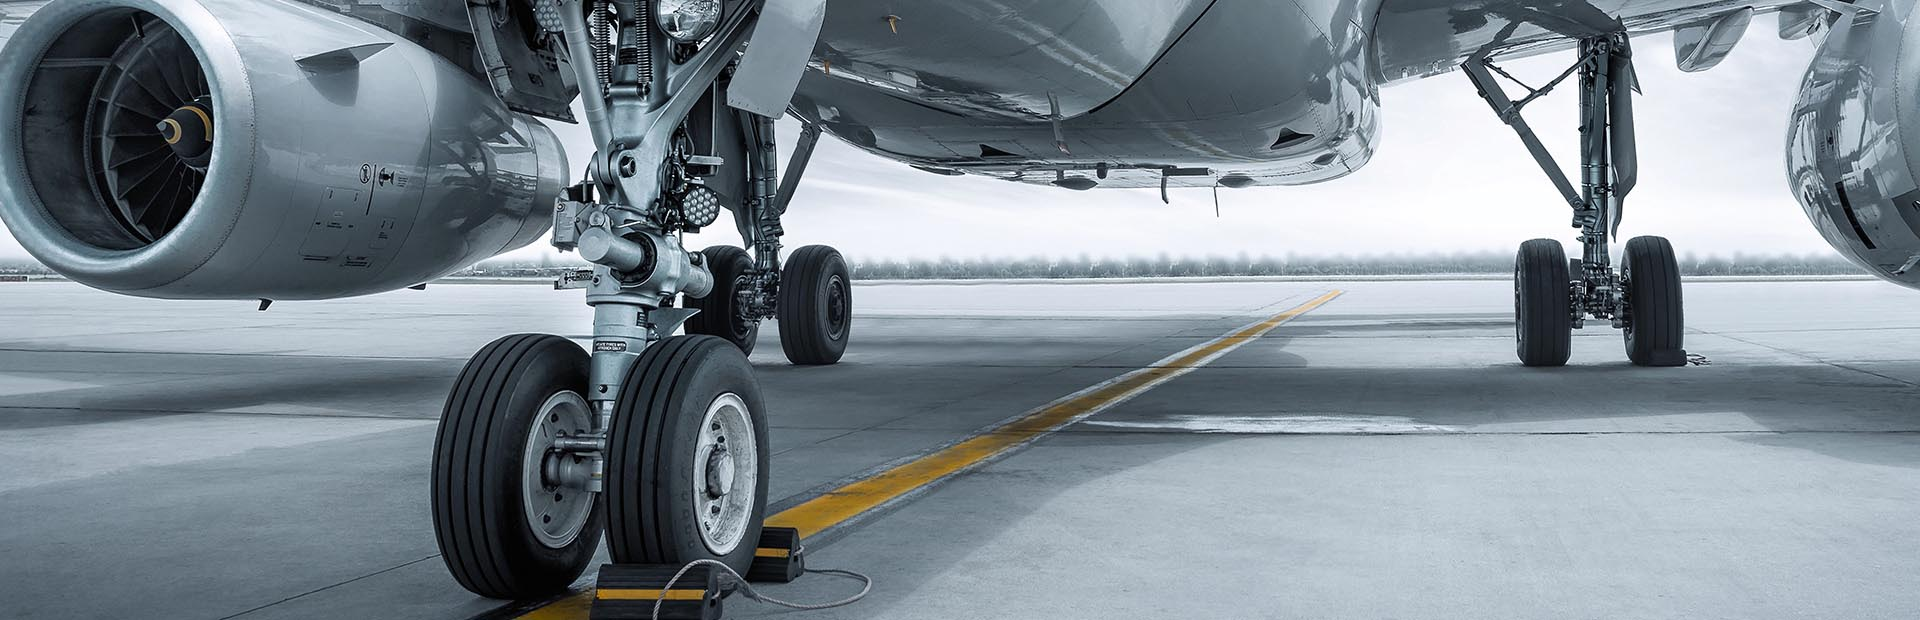 Nitrogen filling for aircraft tires to prevent fire - Inmatec